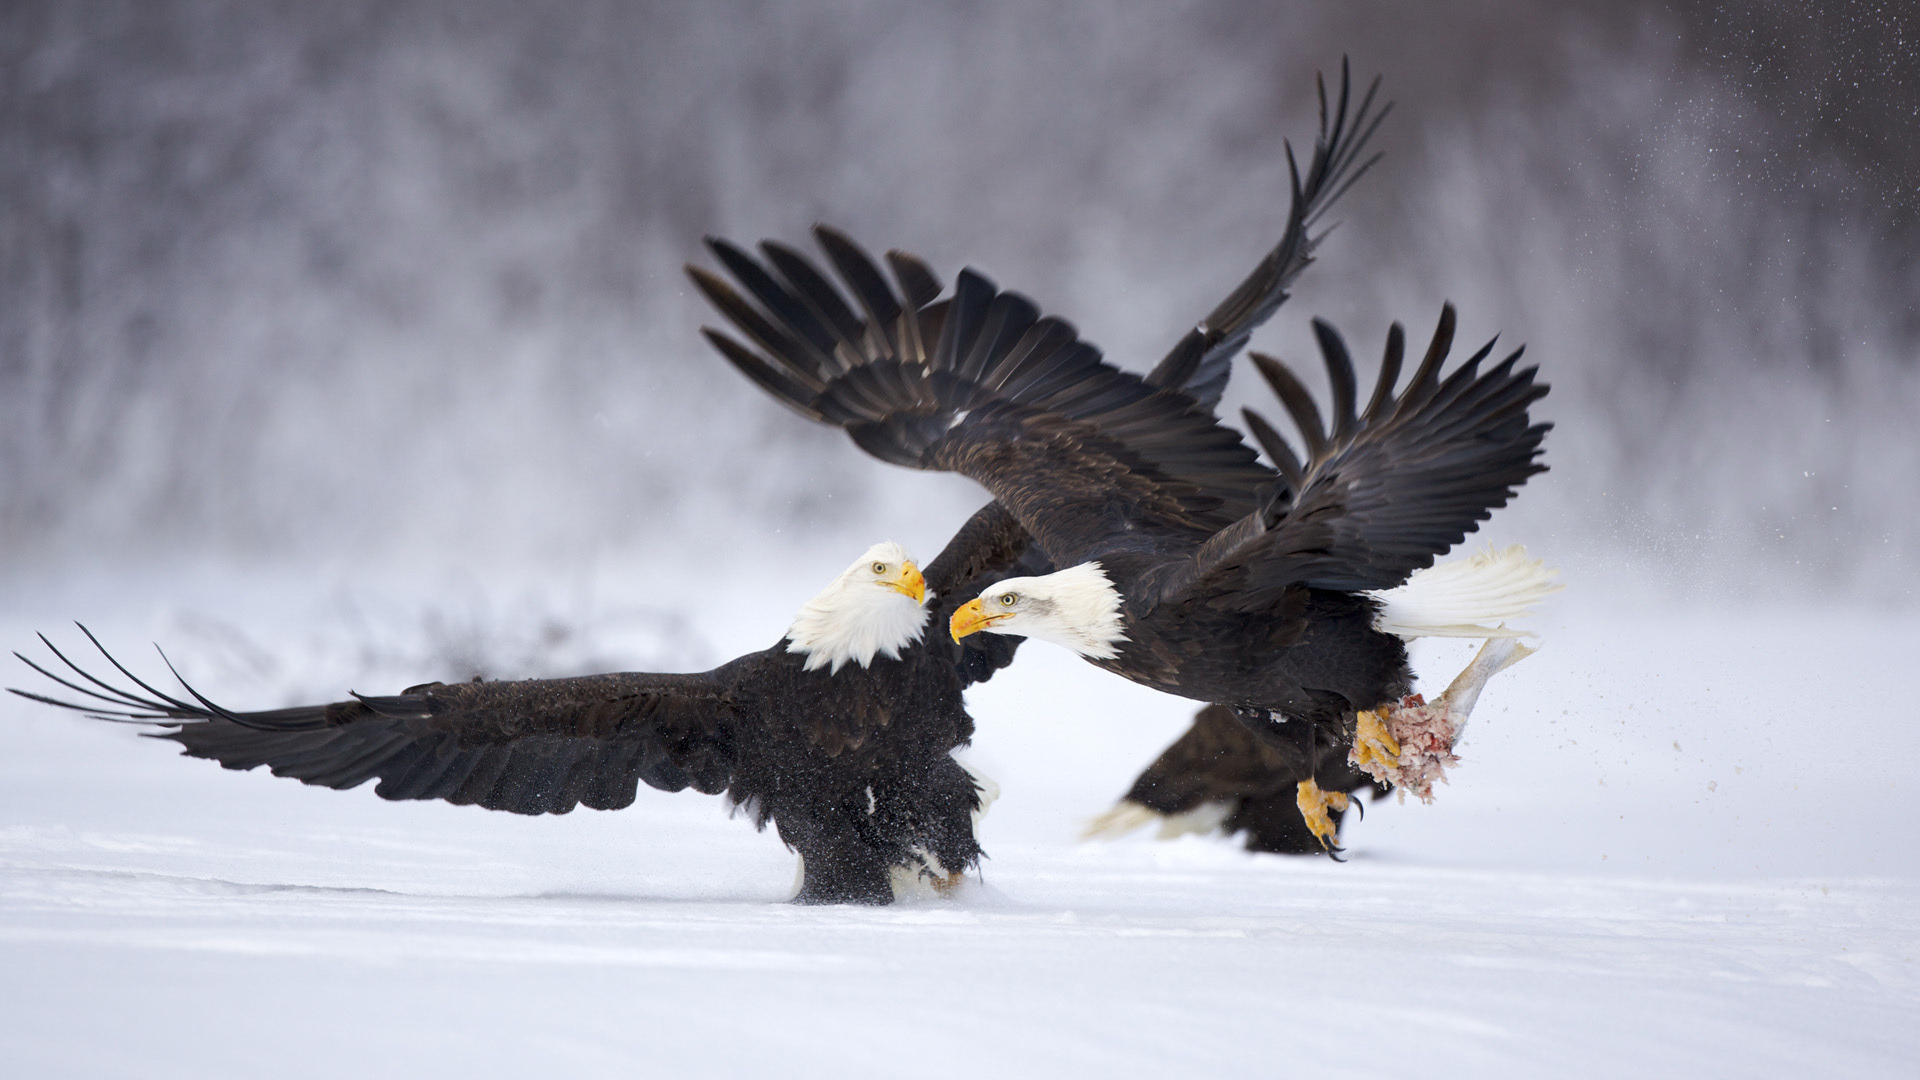 43865 download wallpaper Animals, Birds, Eagles screensavers and pictures for free